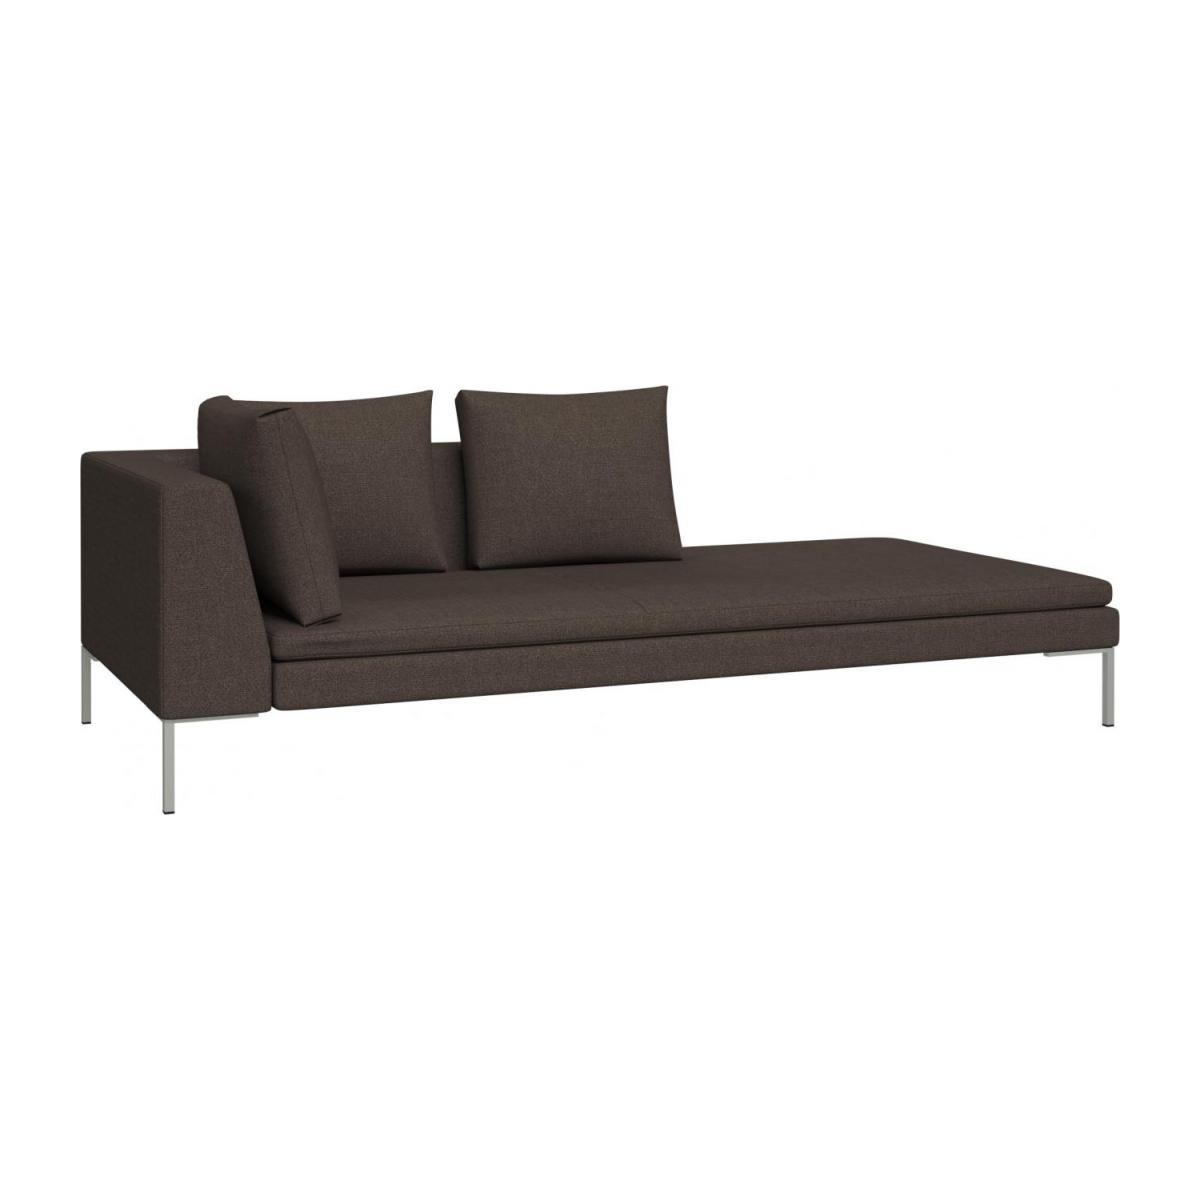 Right chaise longue in Lecce fabric, muscat